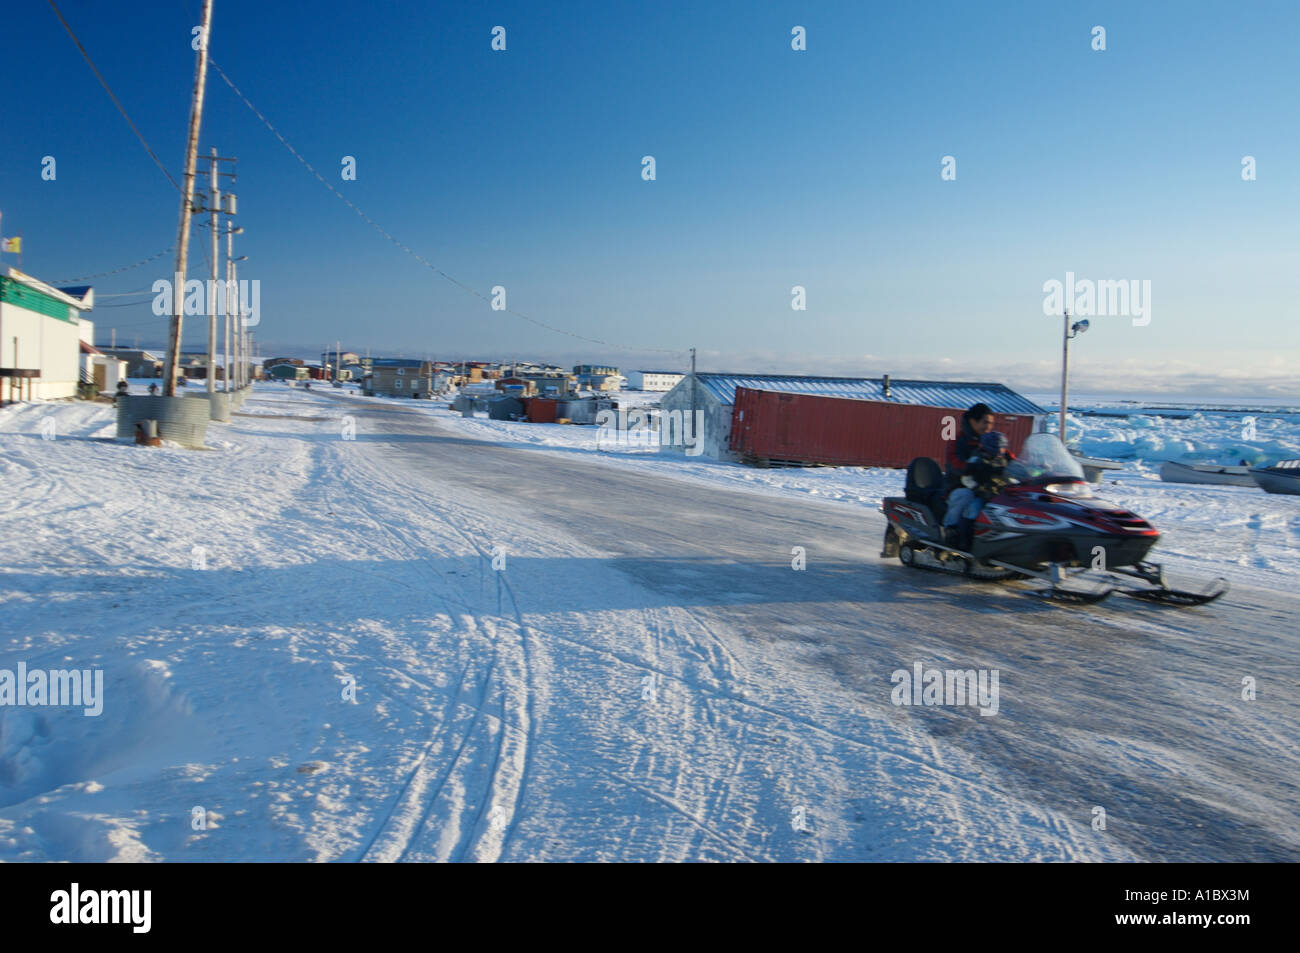 Snowmobile or skidoo Inuit and child on the main road in Igloolik or Iglulik village, Nunavut northern Canada October - Stock Image